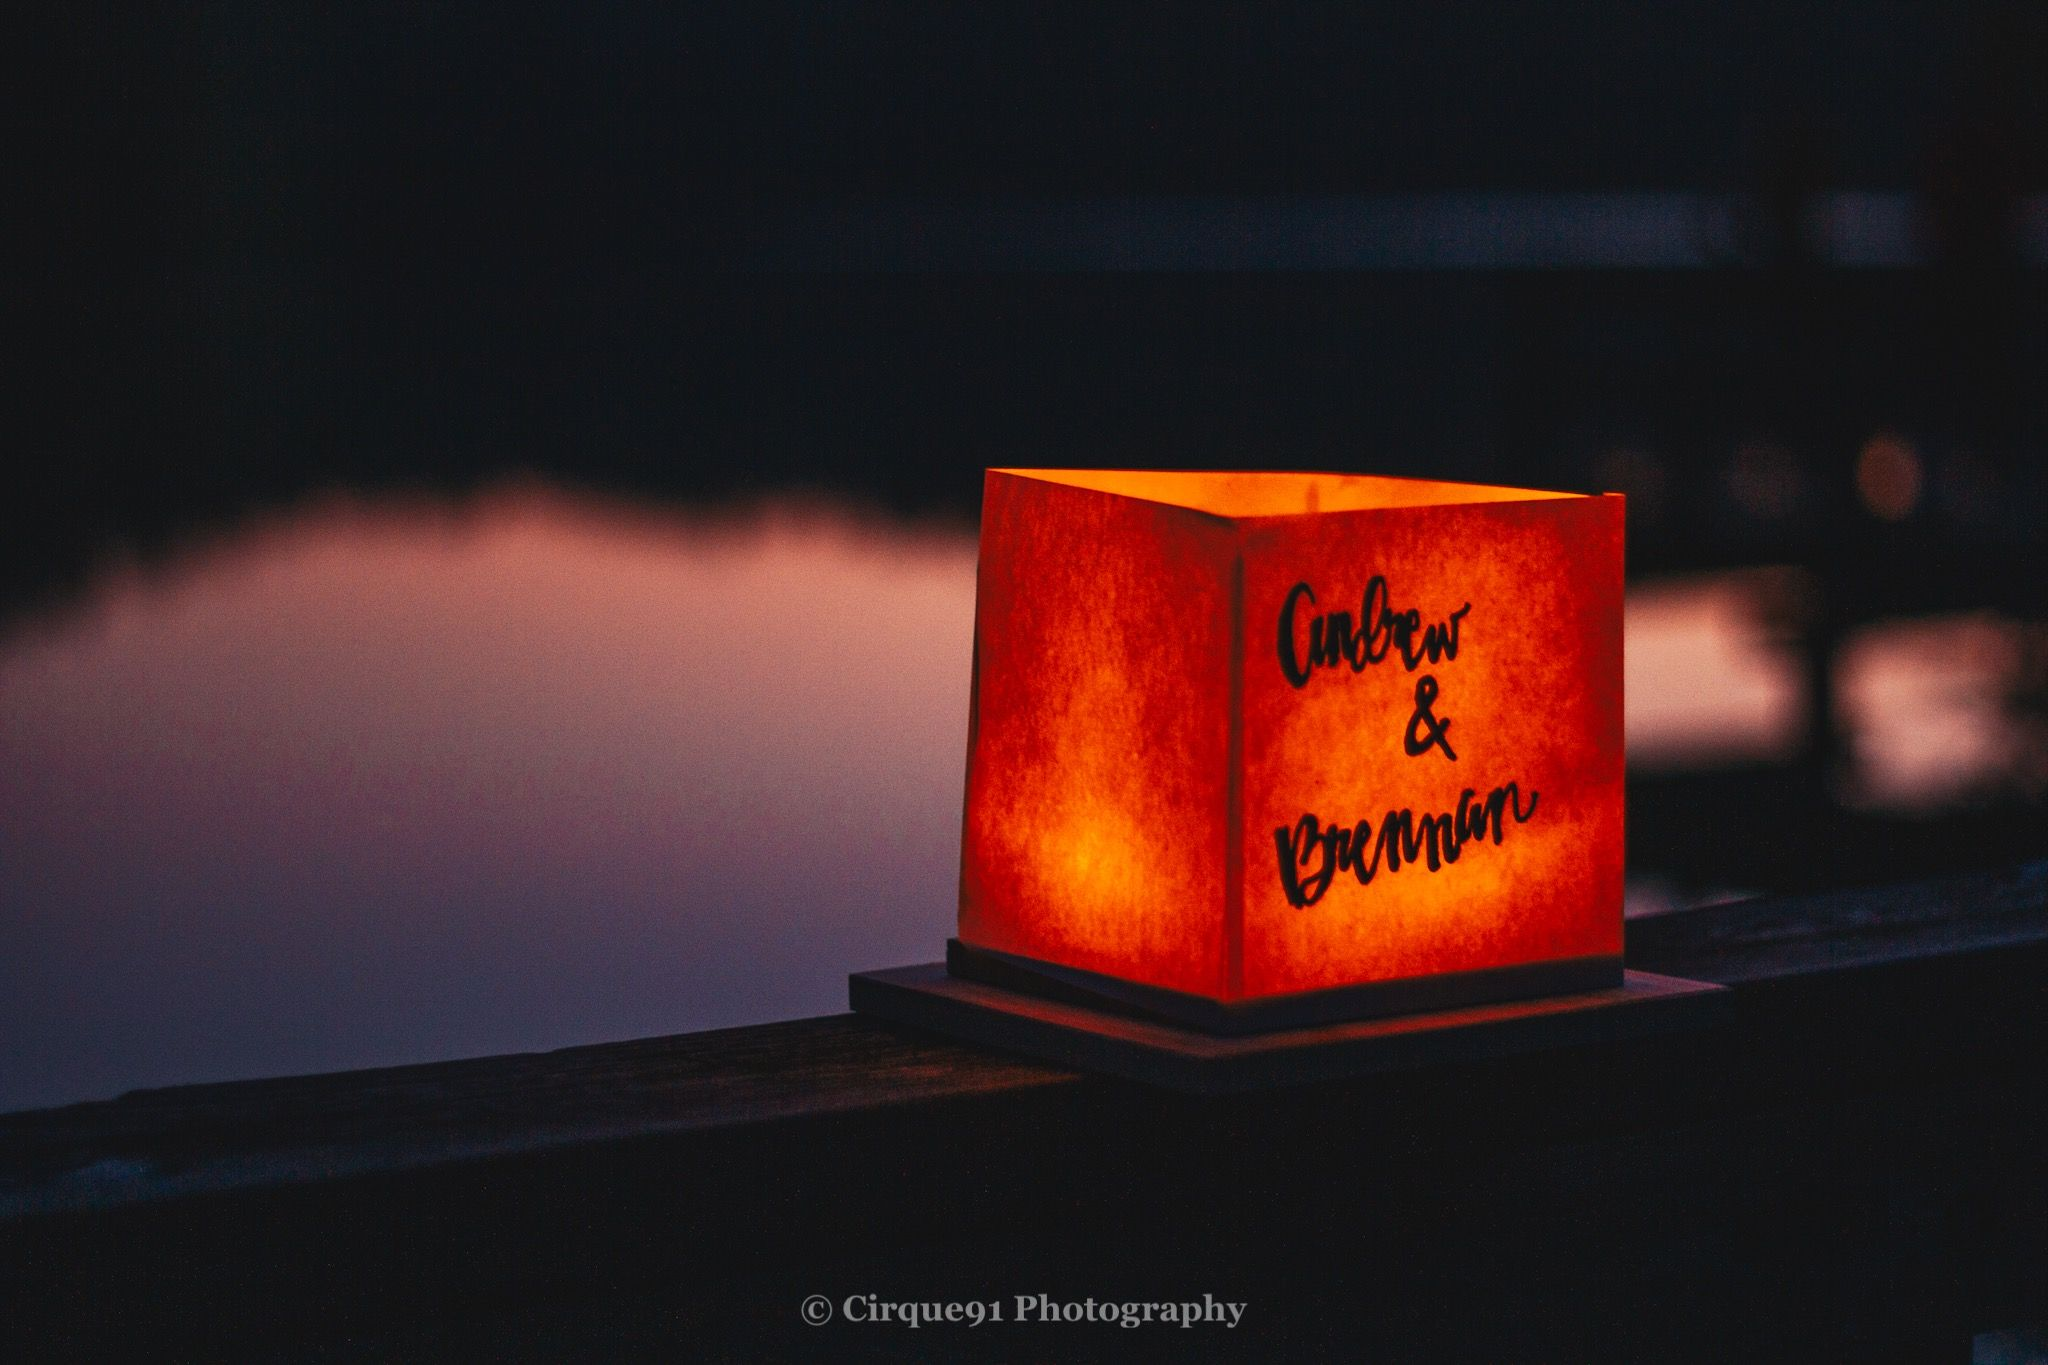 water lantern with words Andrew & Brennan written during sunset with lake reidsville in the background